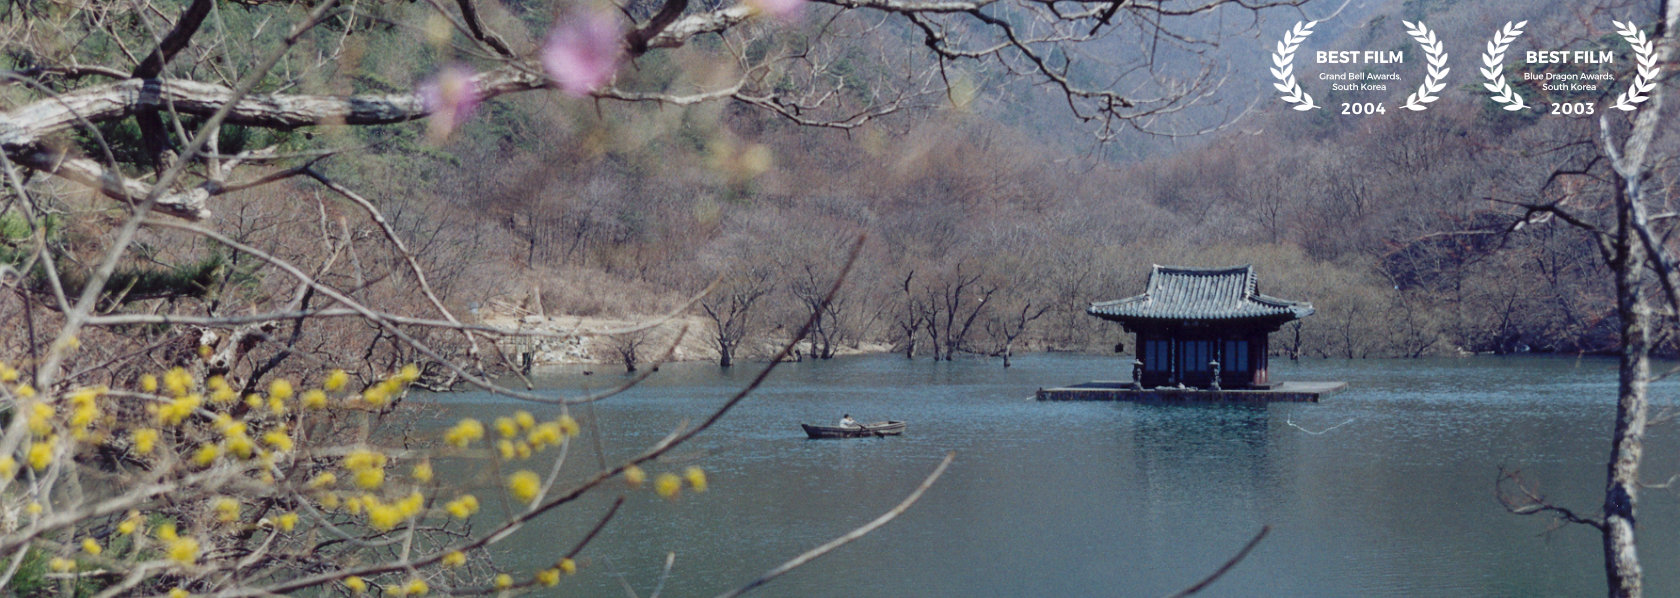 A boat rowing towards a small monstery in the middle of a lake - Spring Summer Fall Winter and Spring - THIS Buddhist Film Festival